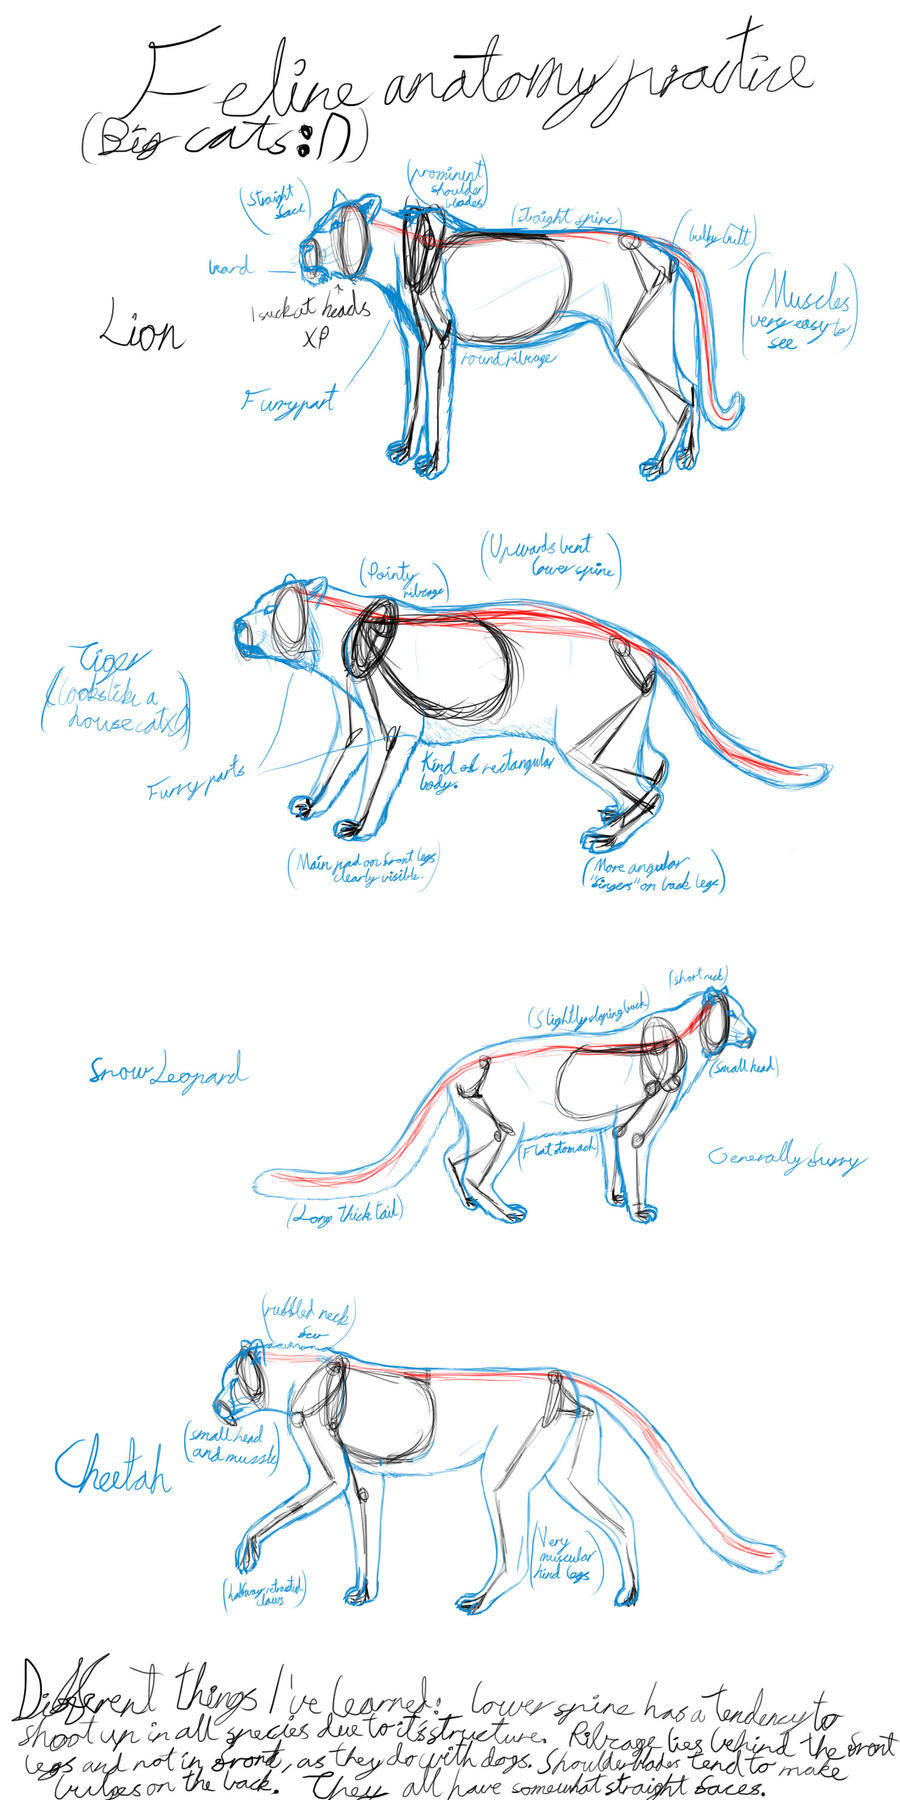 Big cat anatomy practice by Dragongryph on DeviantArt